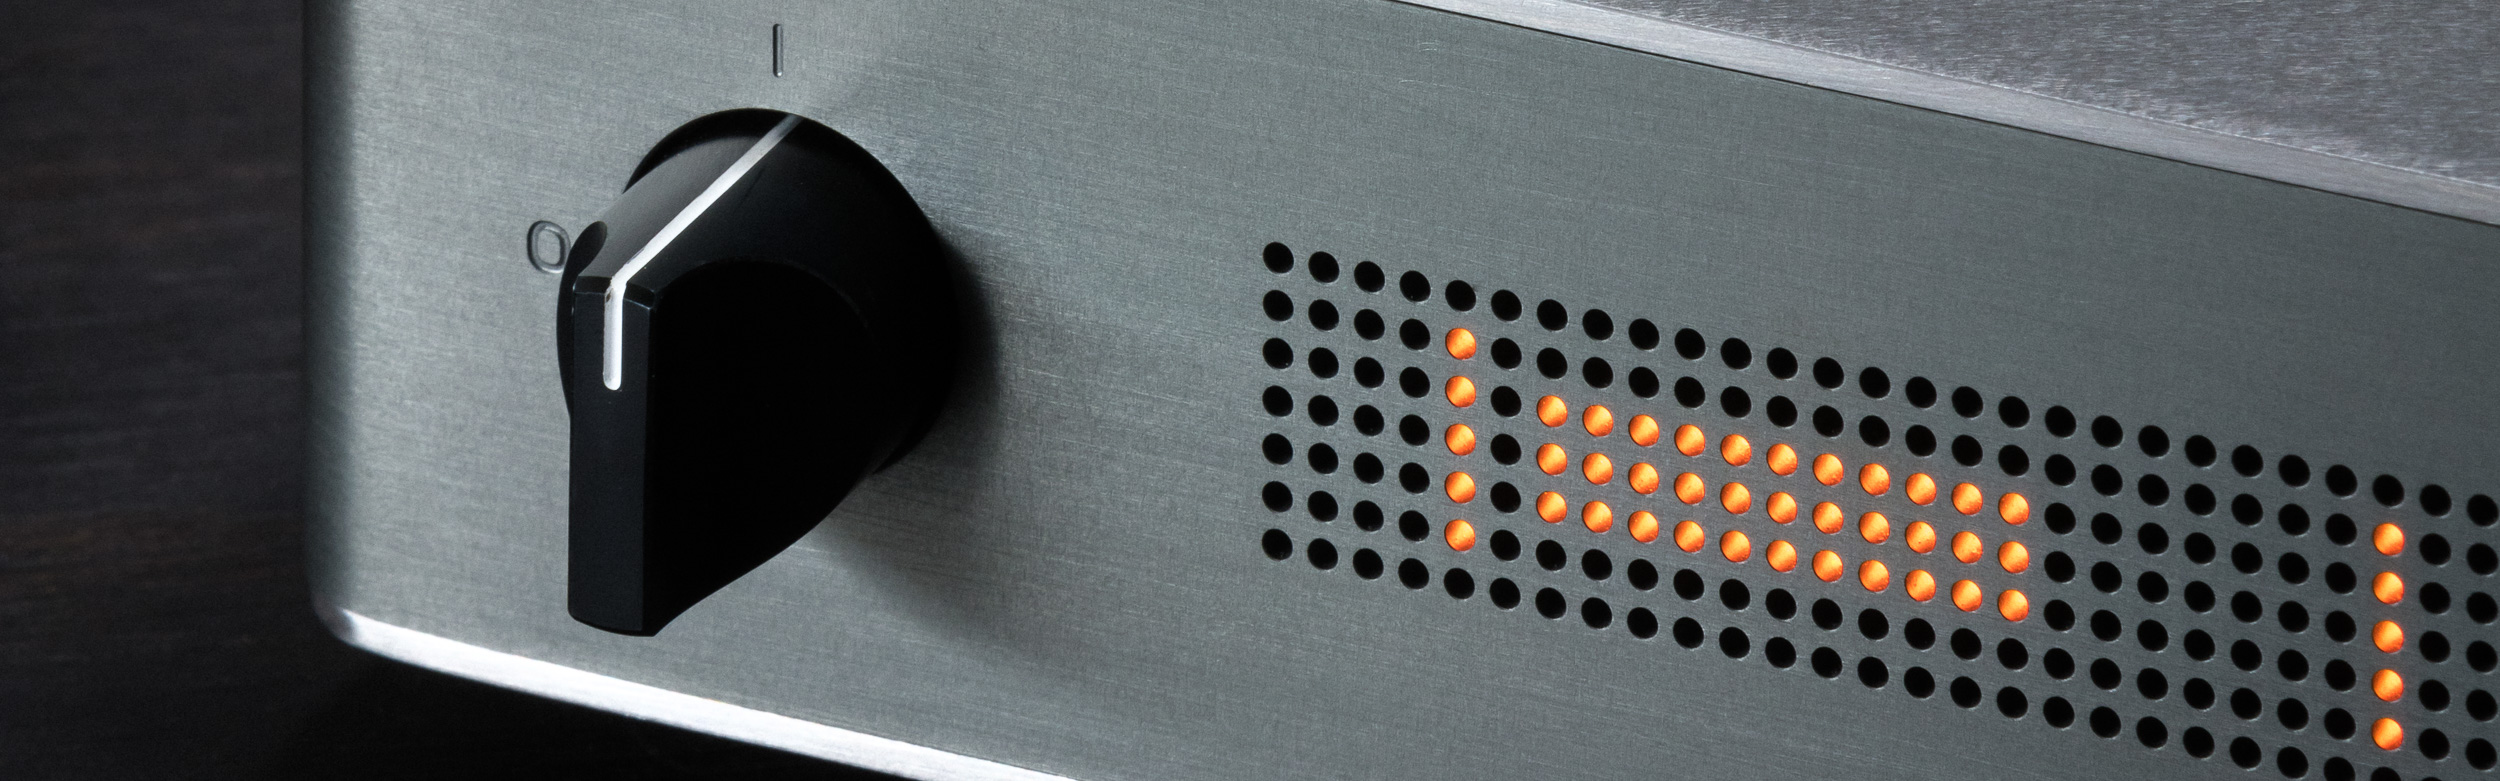 Lucie_web_3430_preamp_front_detail_web_banner16-5_2p5k.jpg